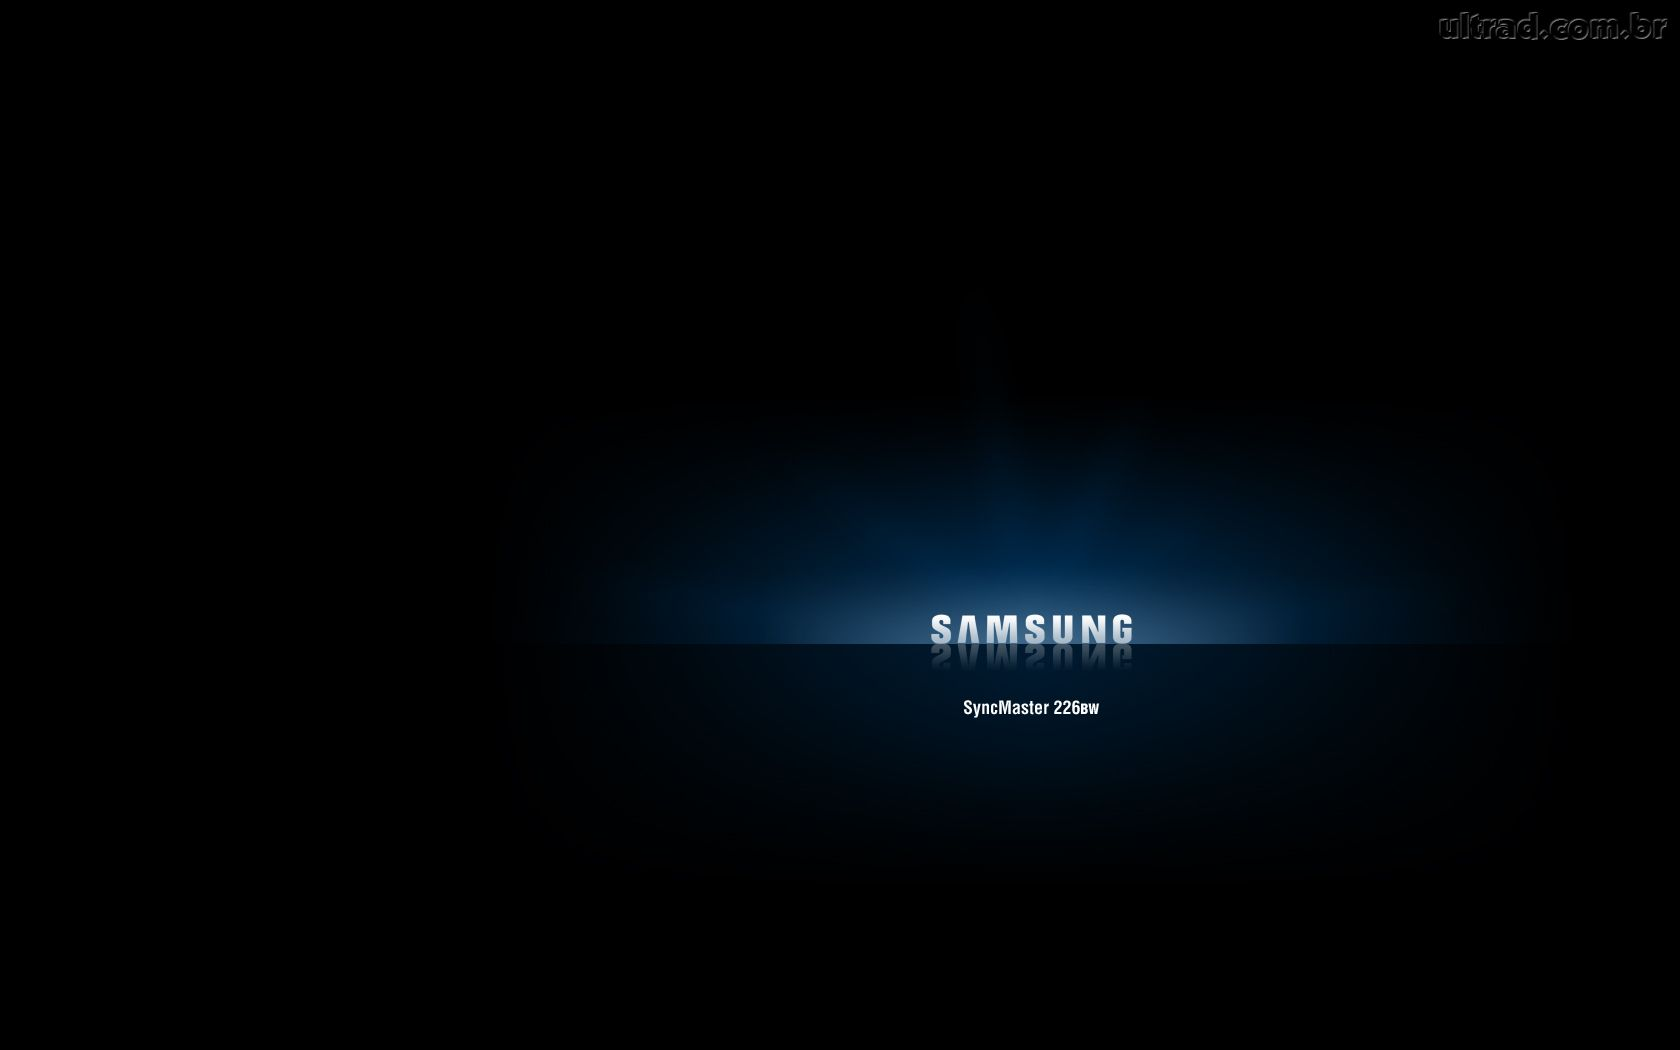 39 Samsung Laptop Wallpaper Hd On Wallpapersafari